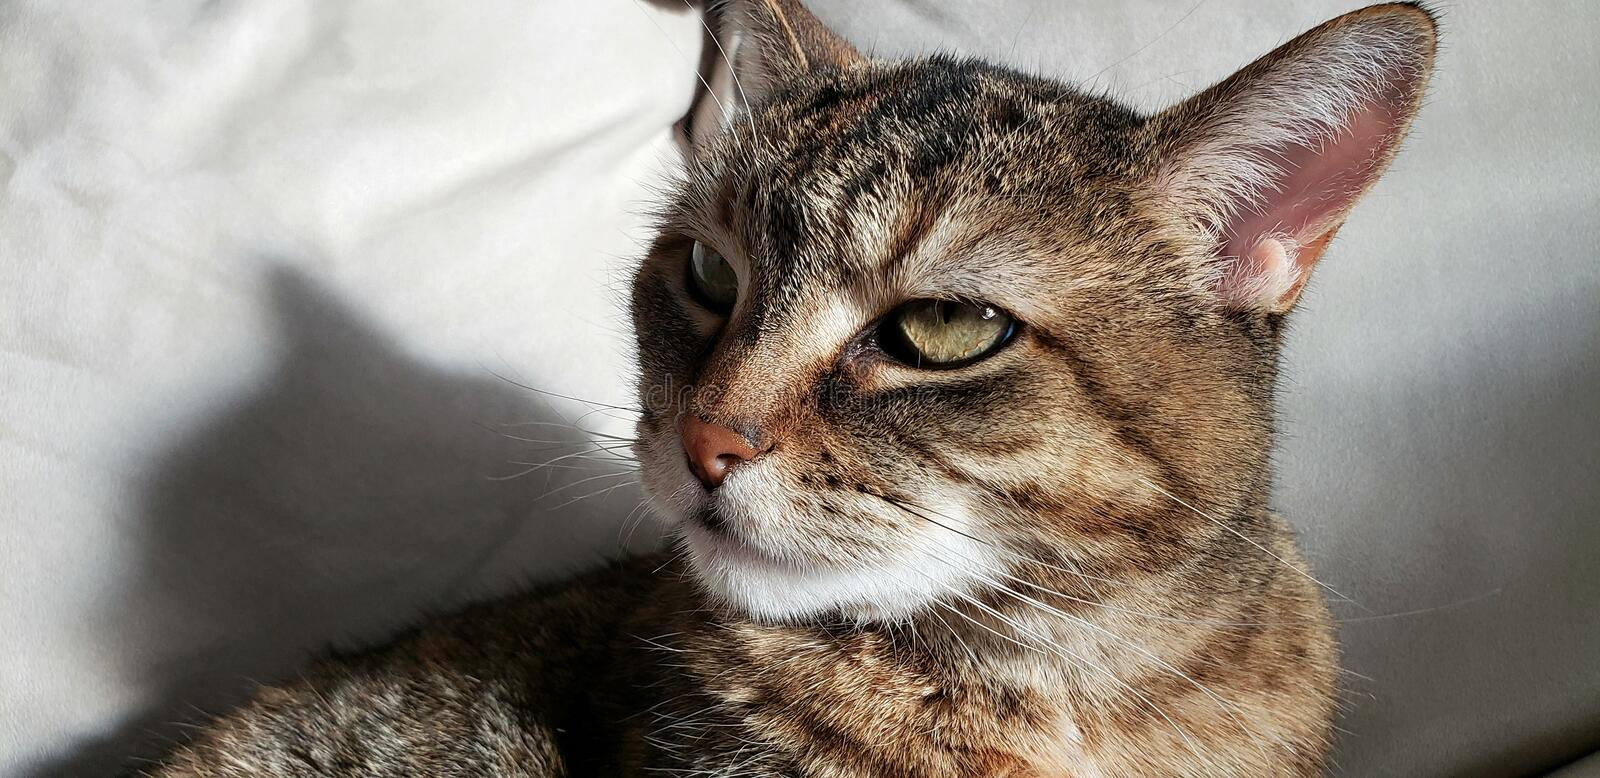 Cat Thinking About Life Shadow Feline stock photography